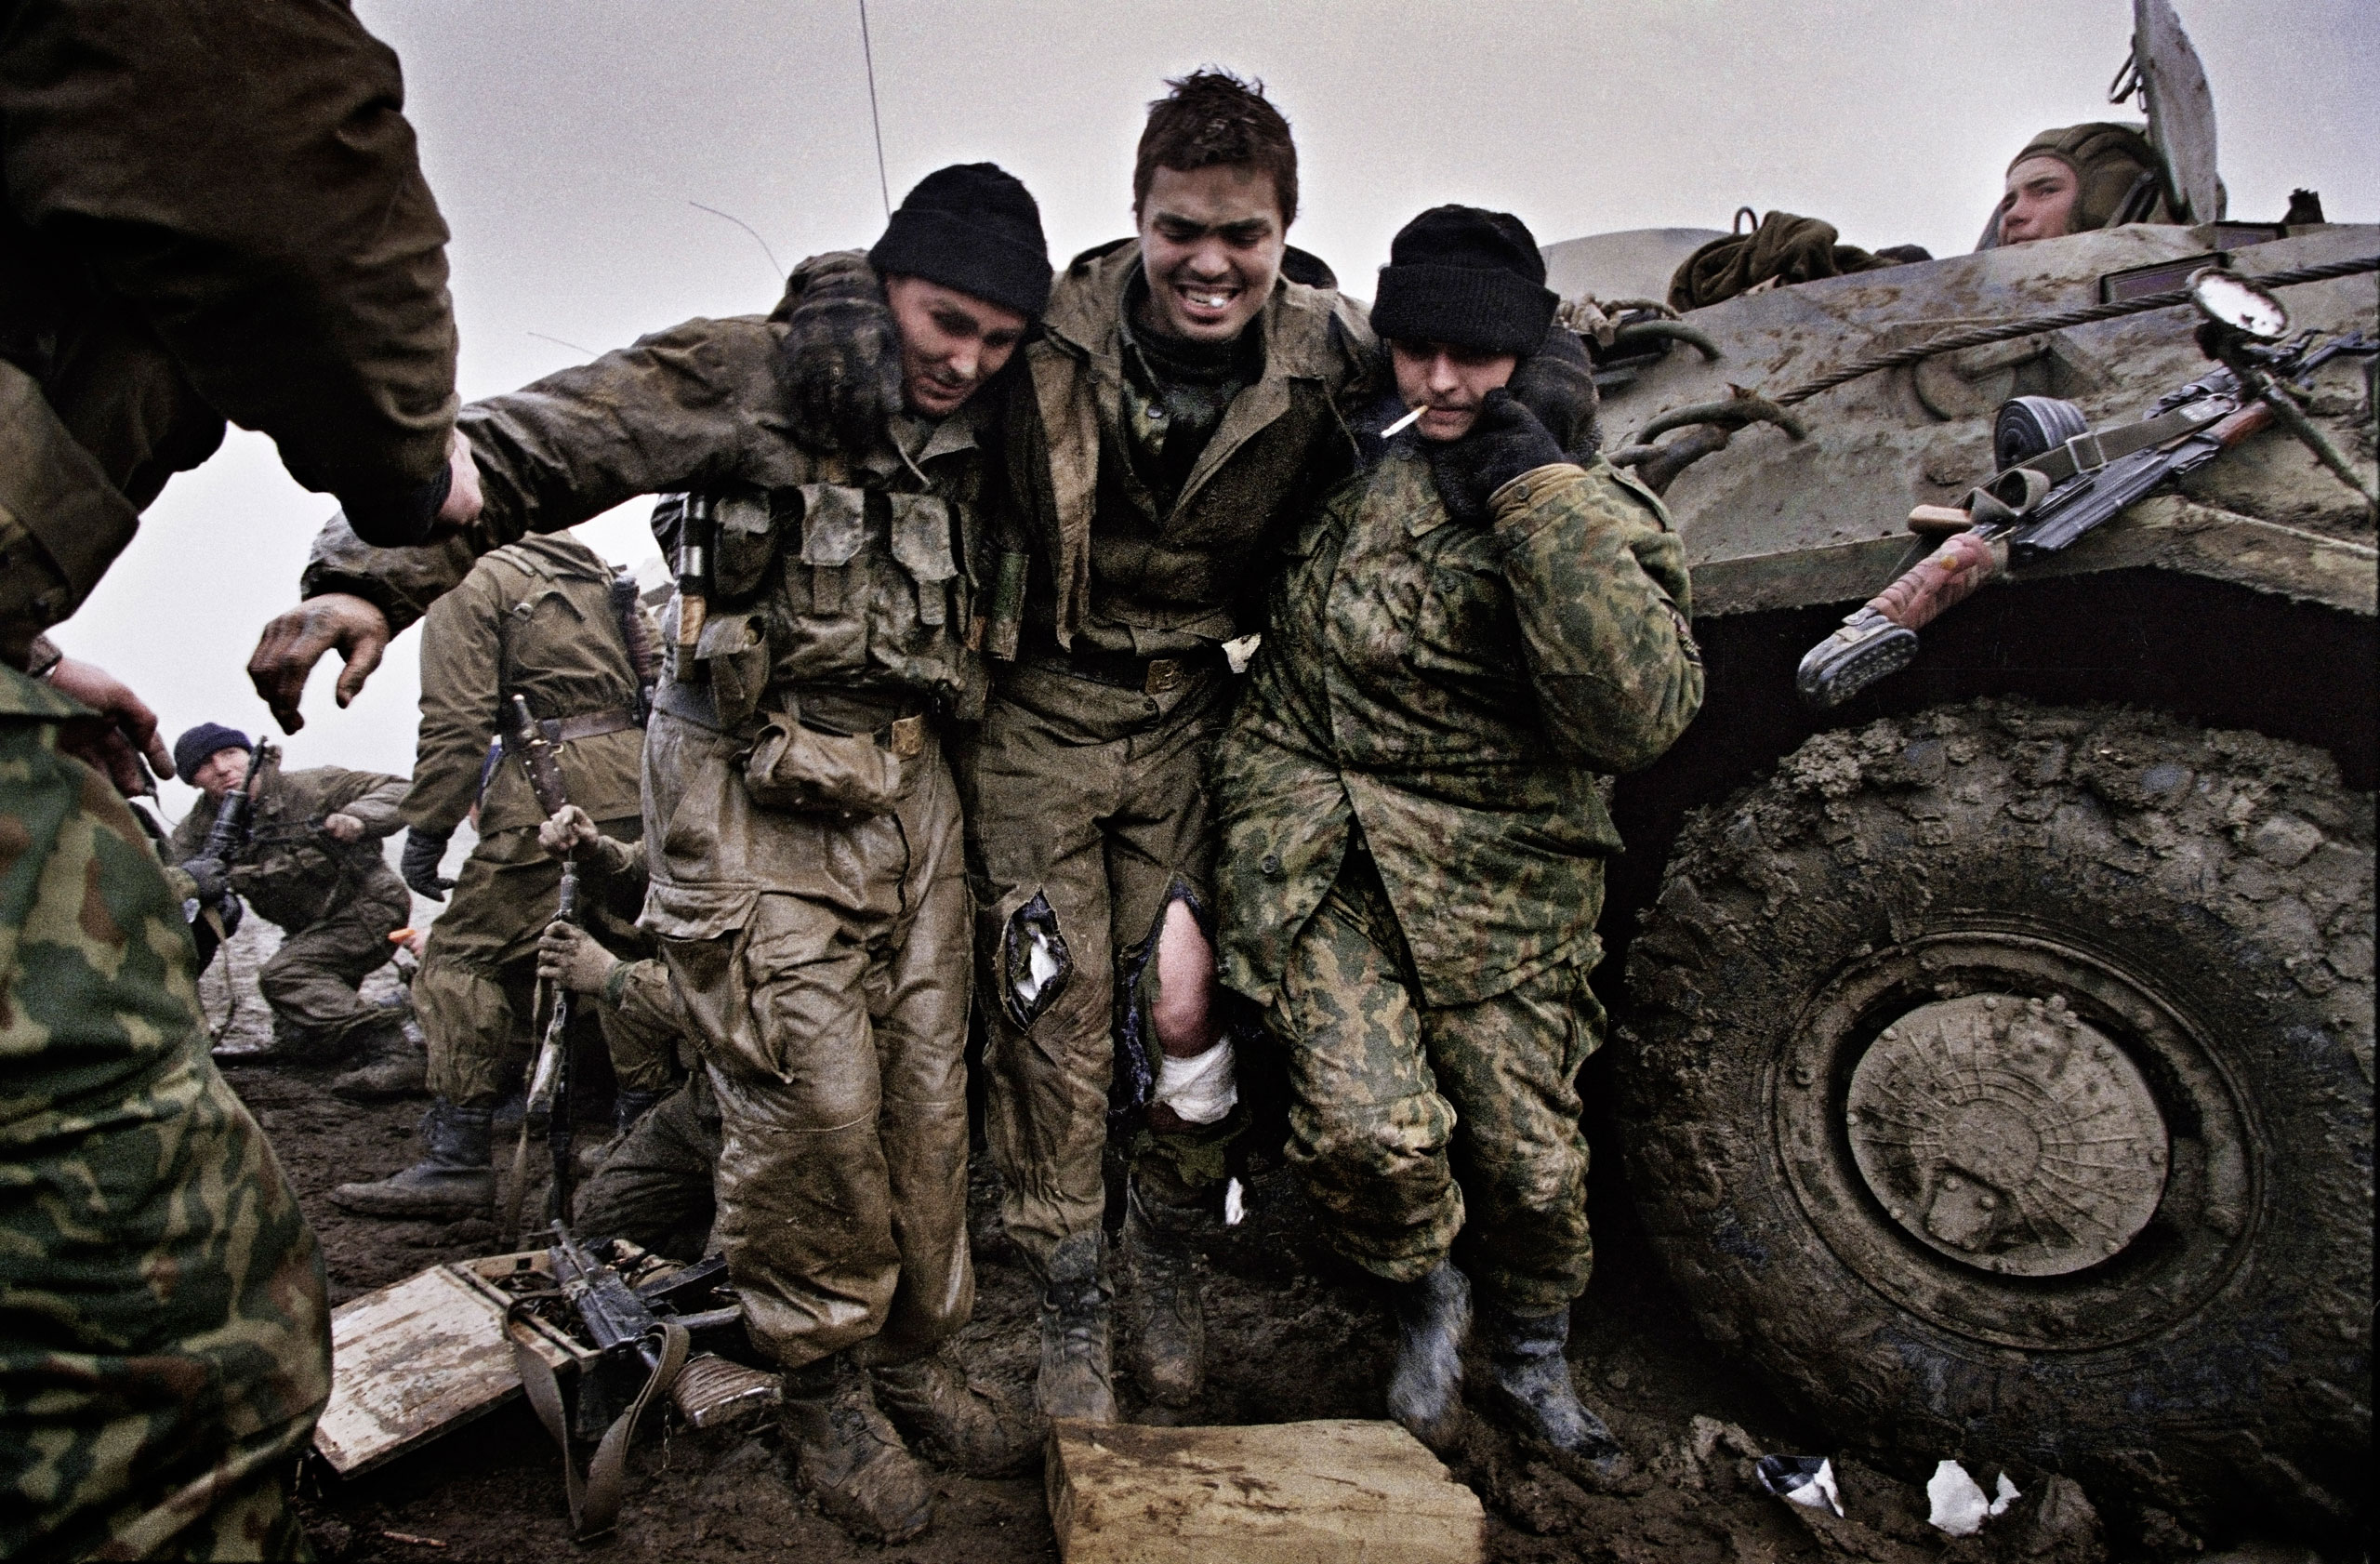 Russian marines help a wounded fellow soldier after being caught in an ambush near Tsentaroy, Chechnya, December 1999.